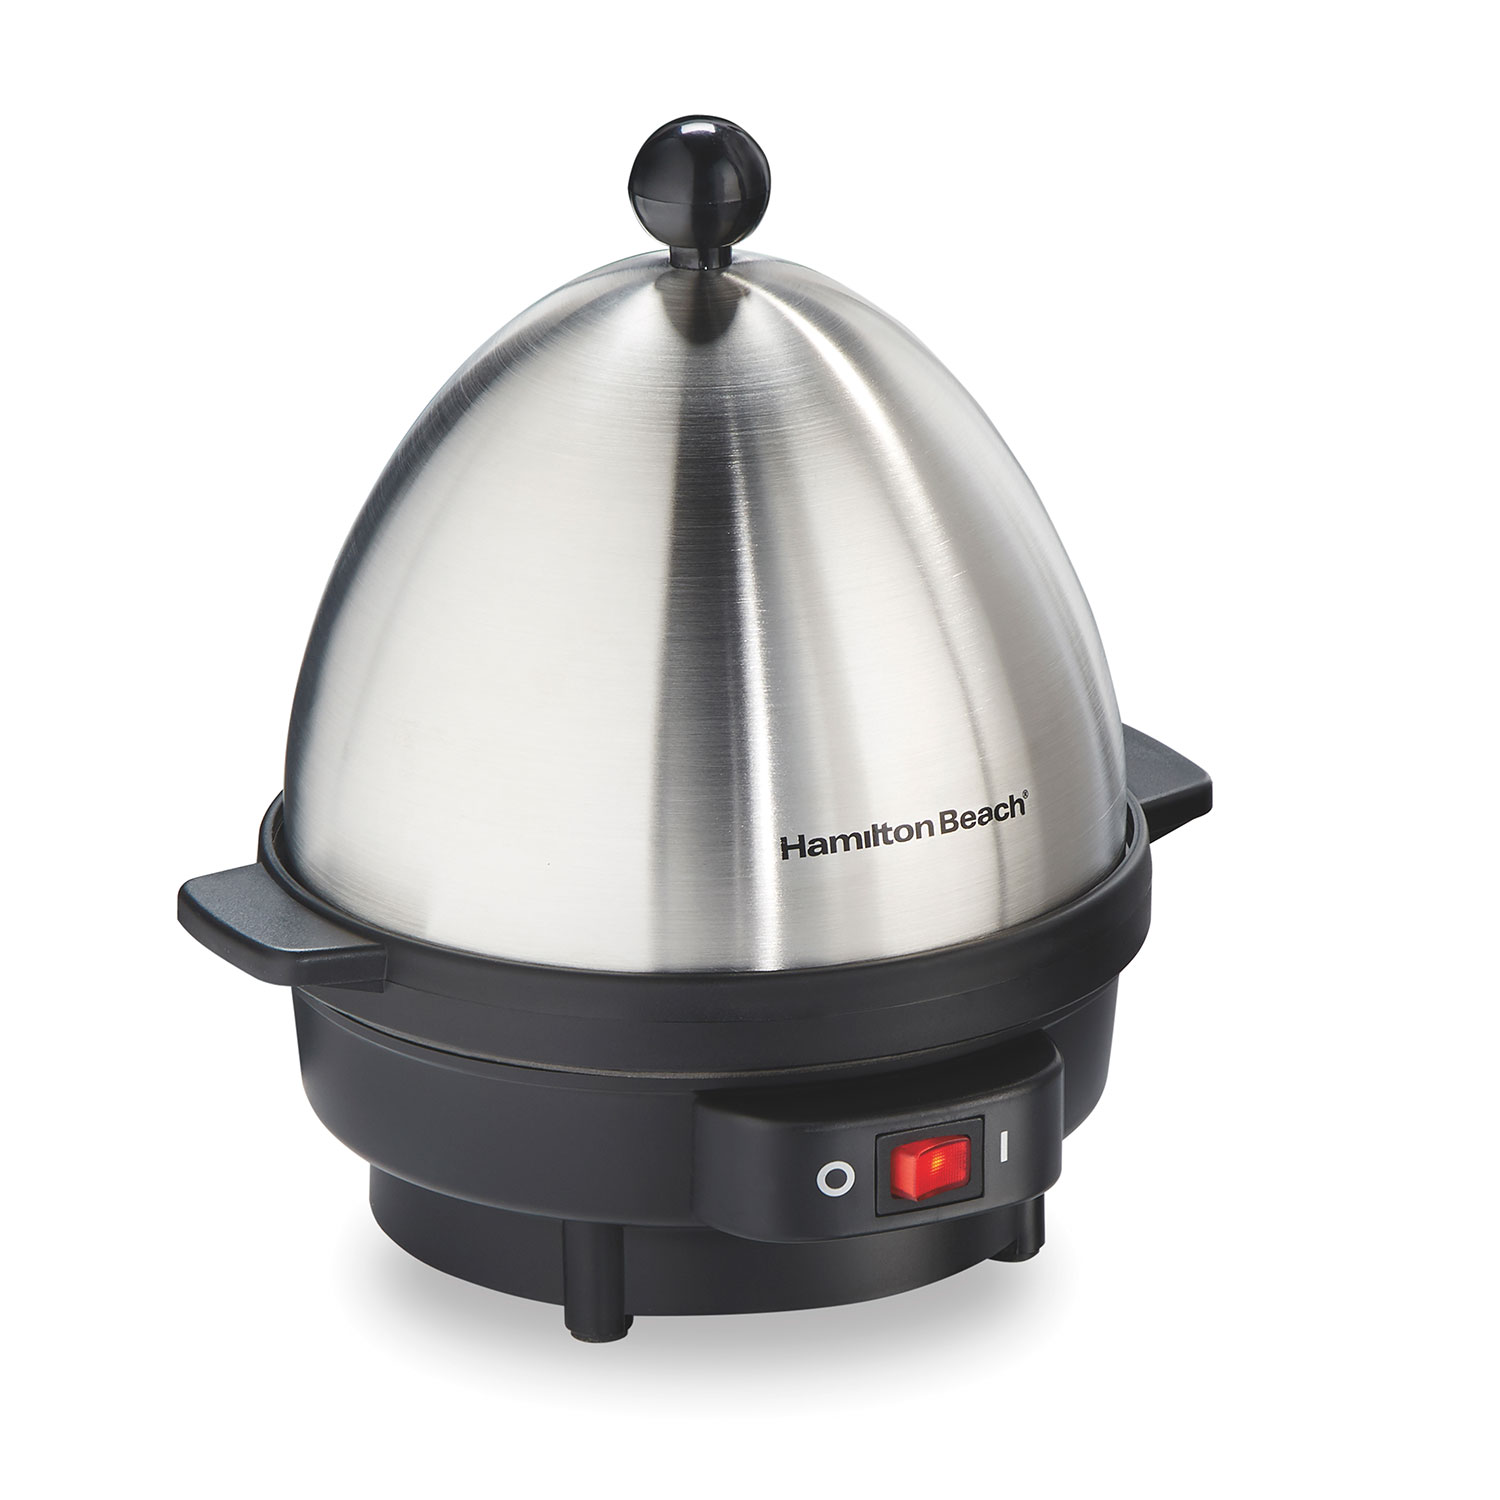 The 25500 Hamilton Beach® Egg Cooker helps you make eggs in a matter of minutes, for quick and easy breakfasts, snacks, side dishes and more.